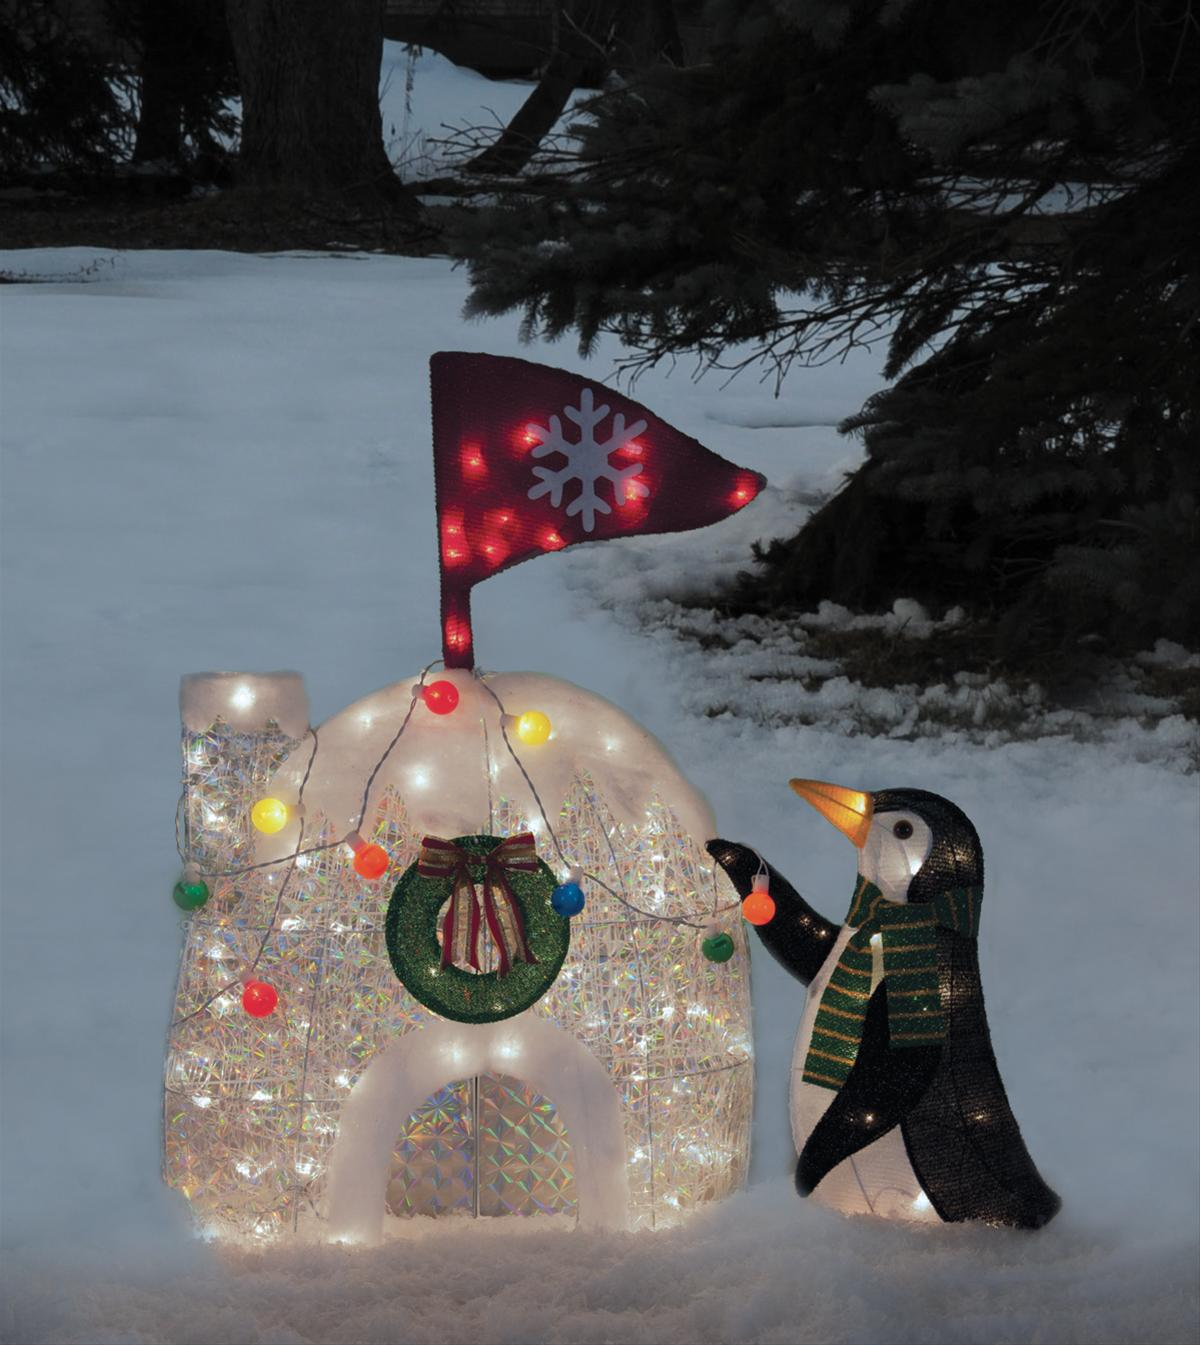 penguin and igloo tinsel light display 216 1411 0 free shipping on orders over 99 at summit. Black Bedroom Furniture Sets. Home Design Ideas